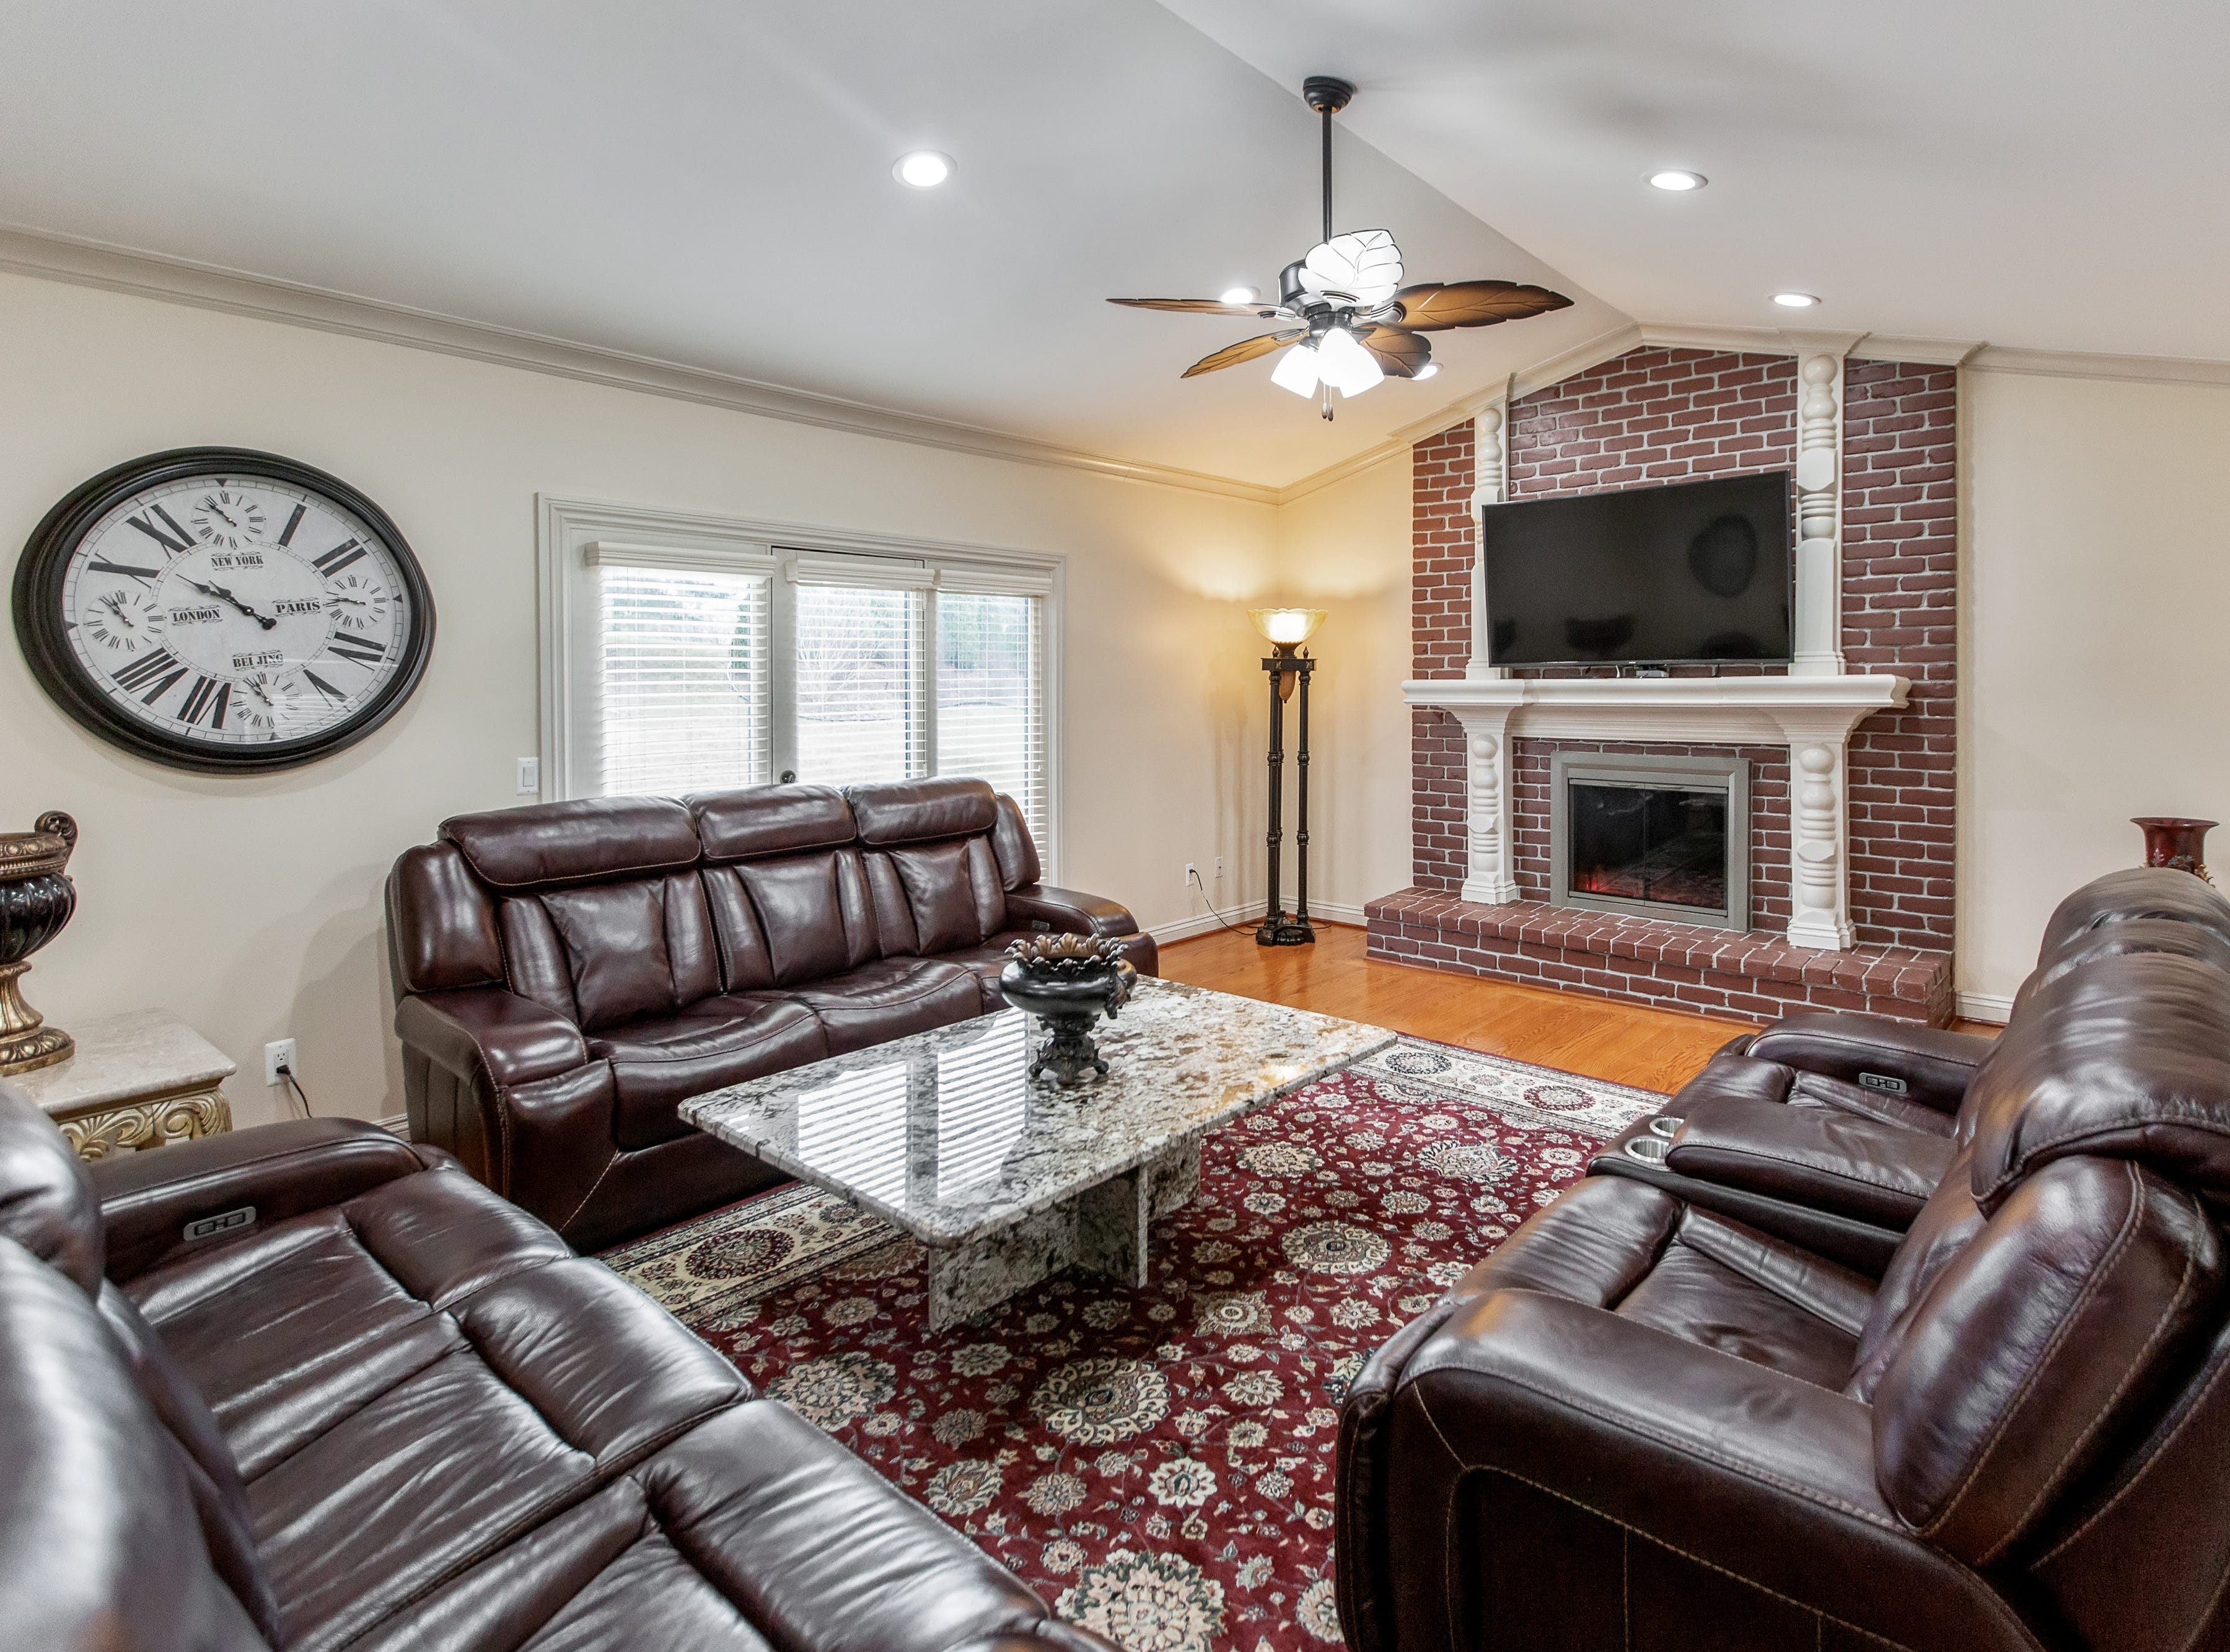 With 2,579 square feet, the two-story house has an open floor plan that flows into a family room with a fireplace that's sure totake the chill away on cold winter nights.